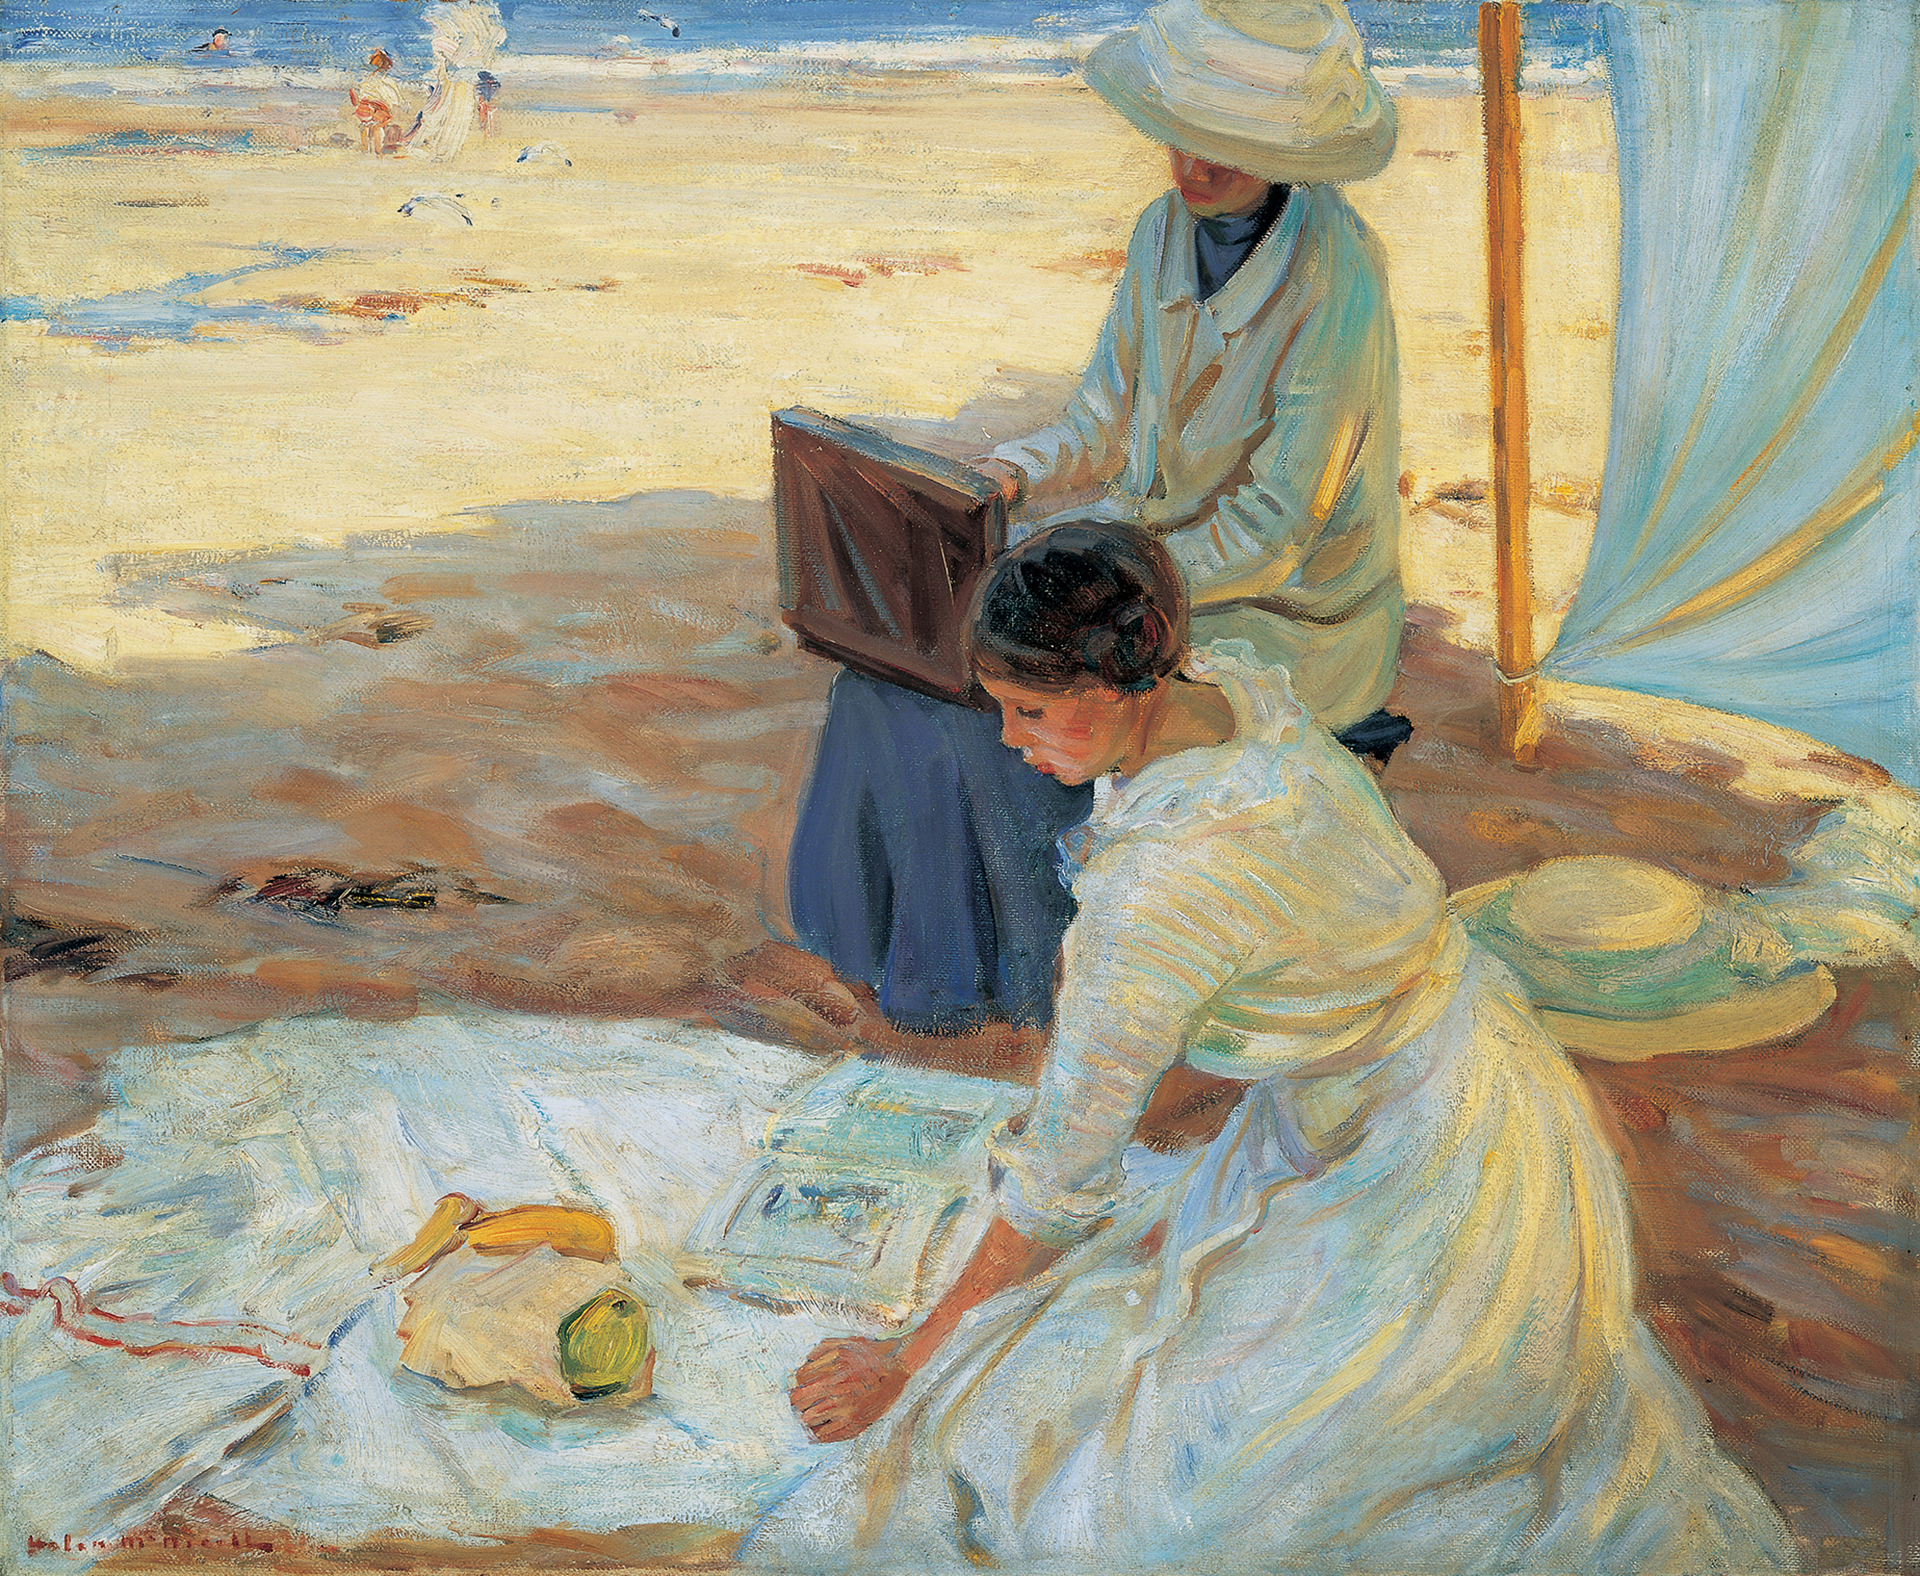 In this seaside scene, two women dressed in white and blue sit in the shade of a tent. In the background, a beach dotted with a few figures and birds stretches to a sliver of ocean.